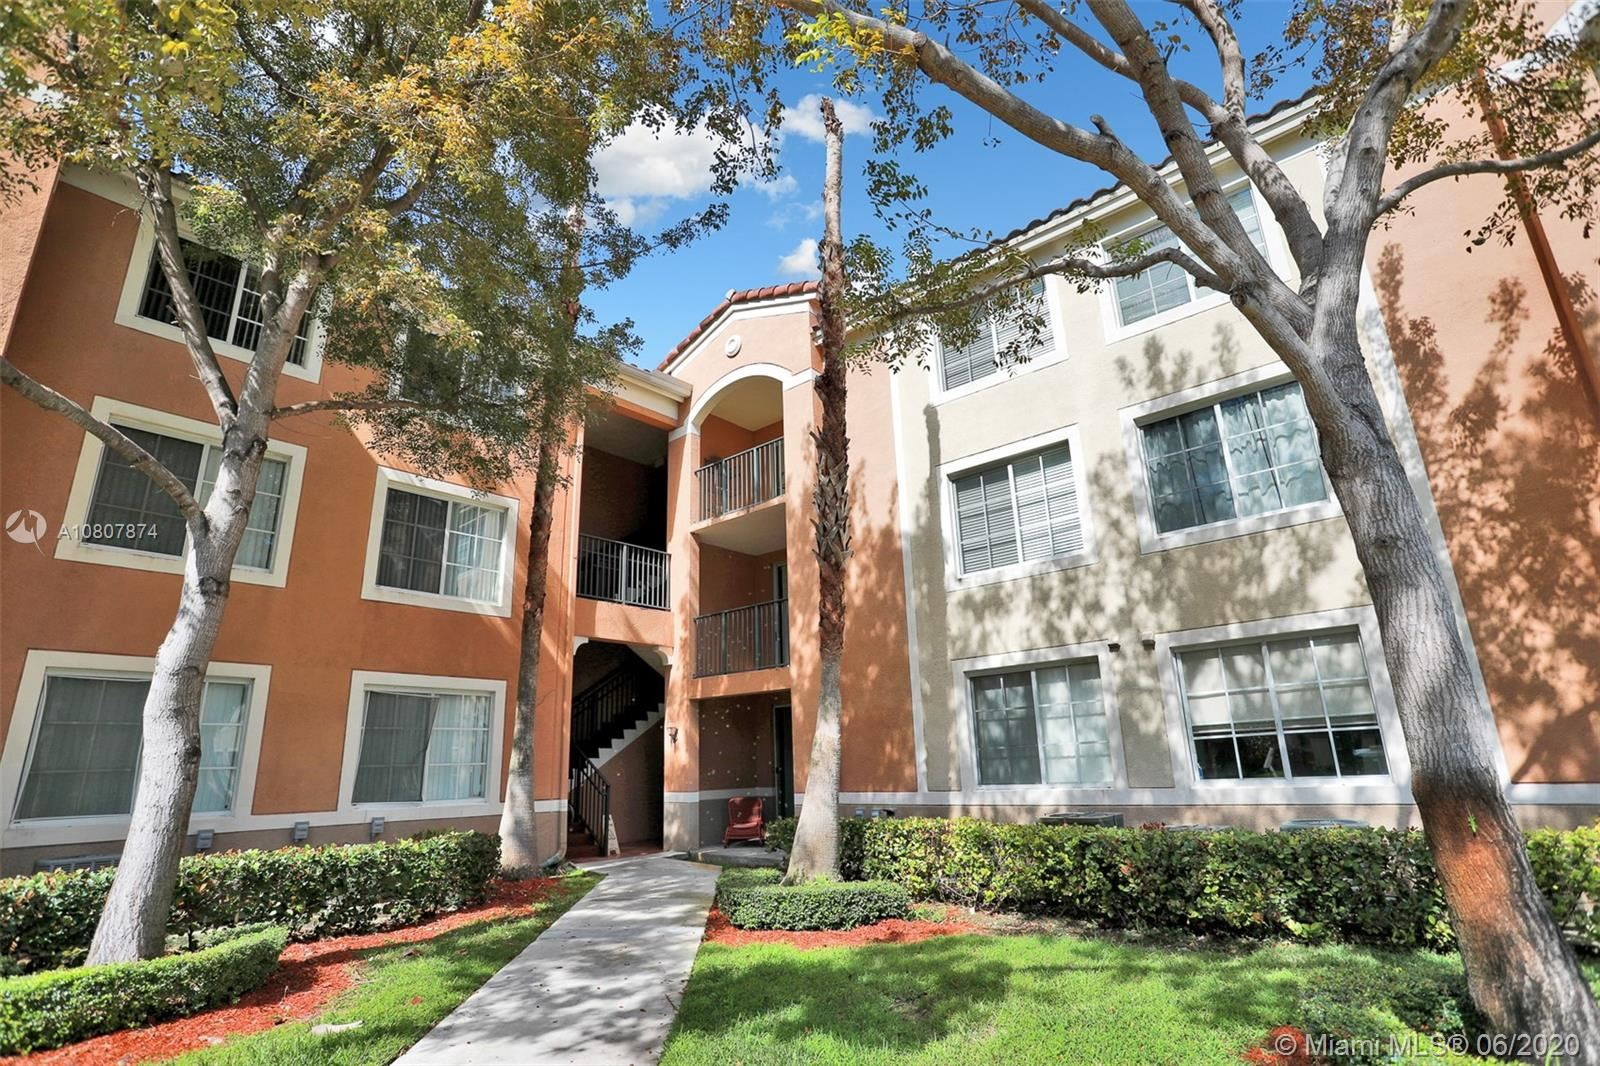 6831 SW 44th St #305, Miami, FL 33155 - #: A10807874